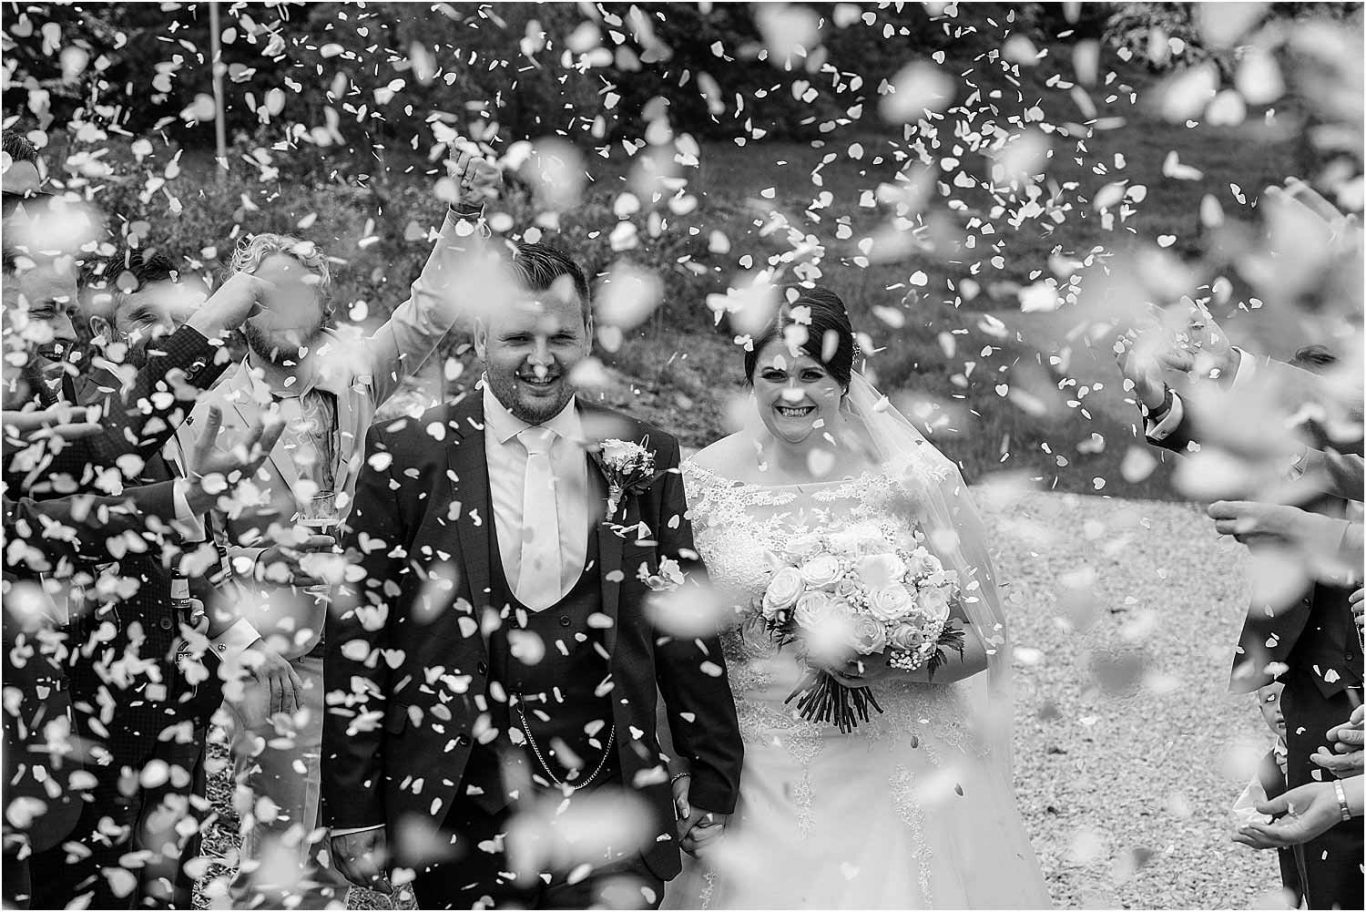 brdie and groom lost amongst confetti